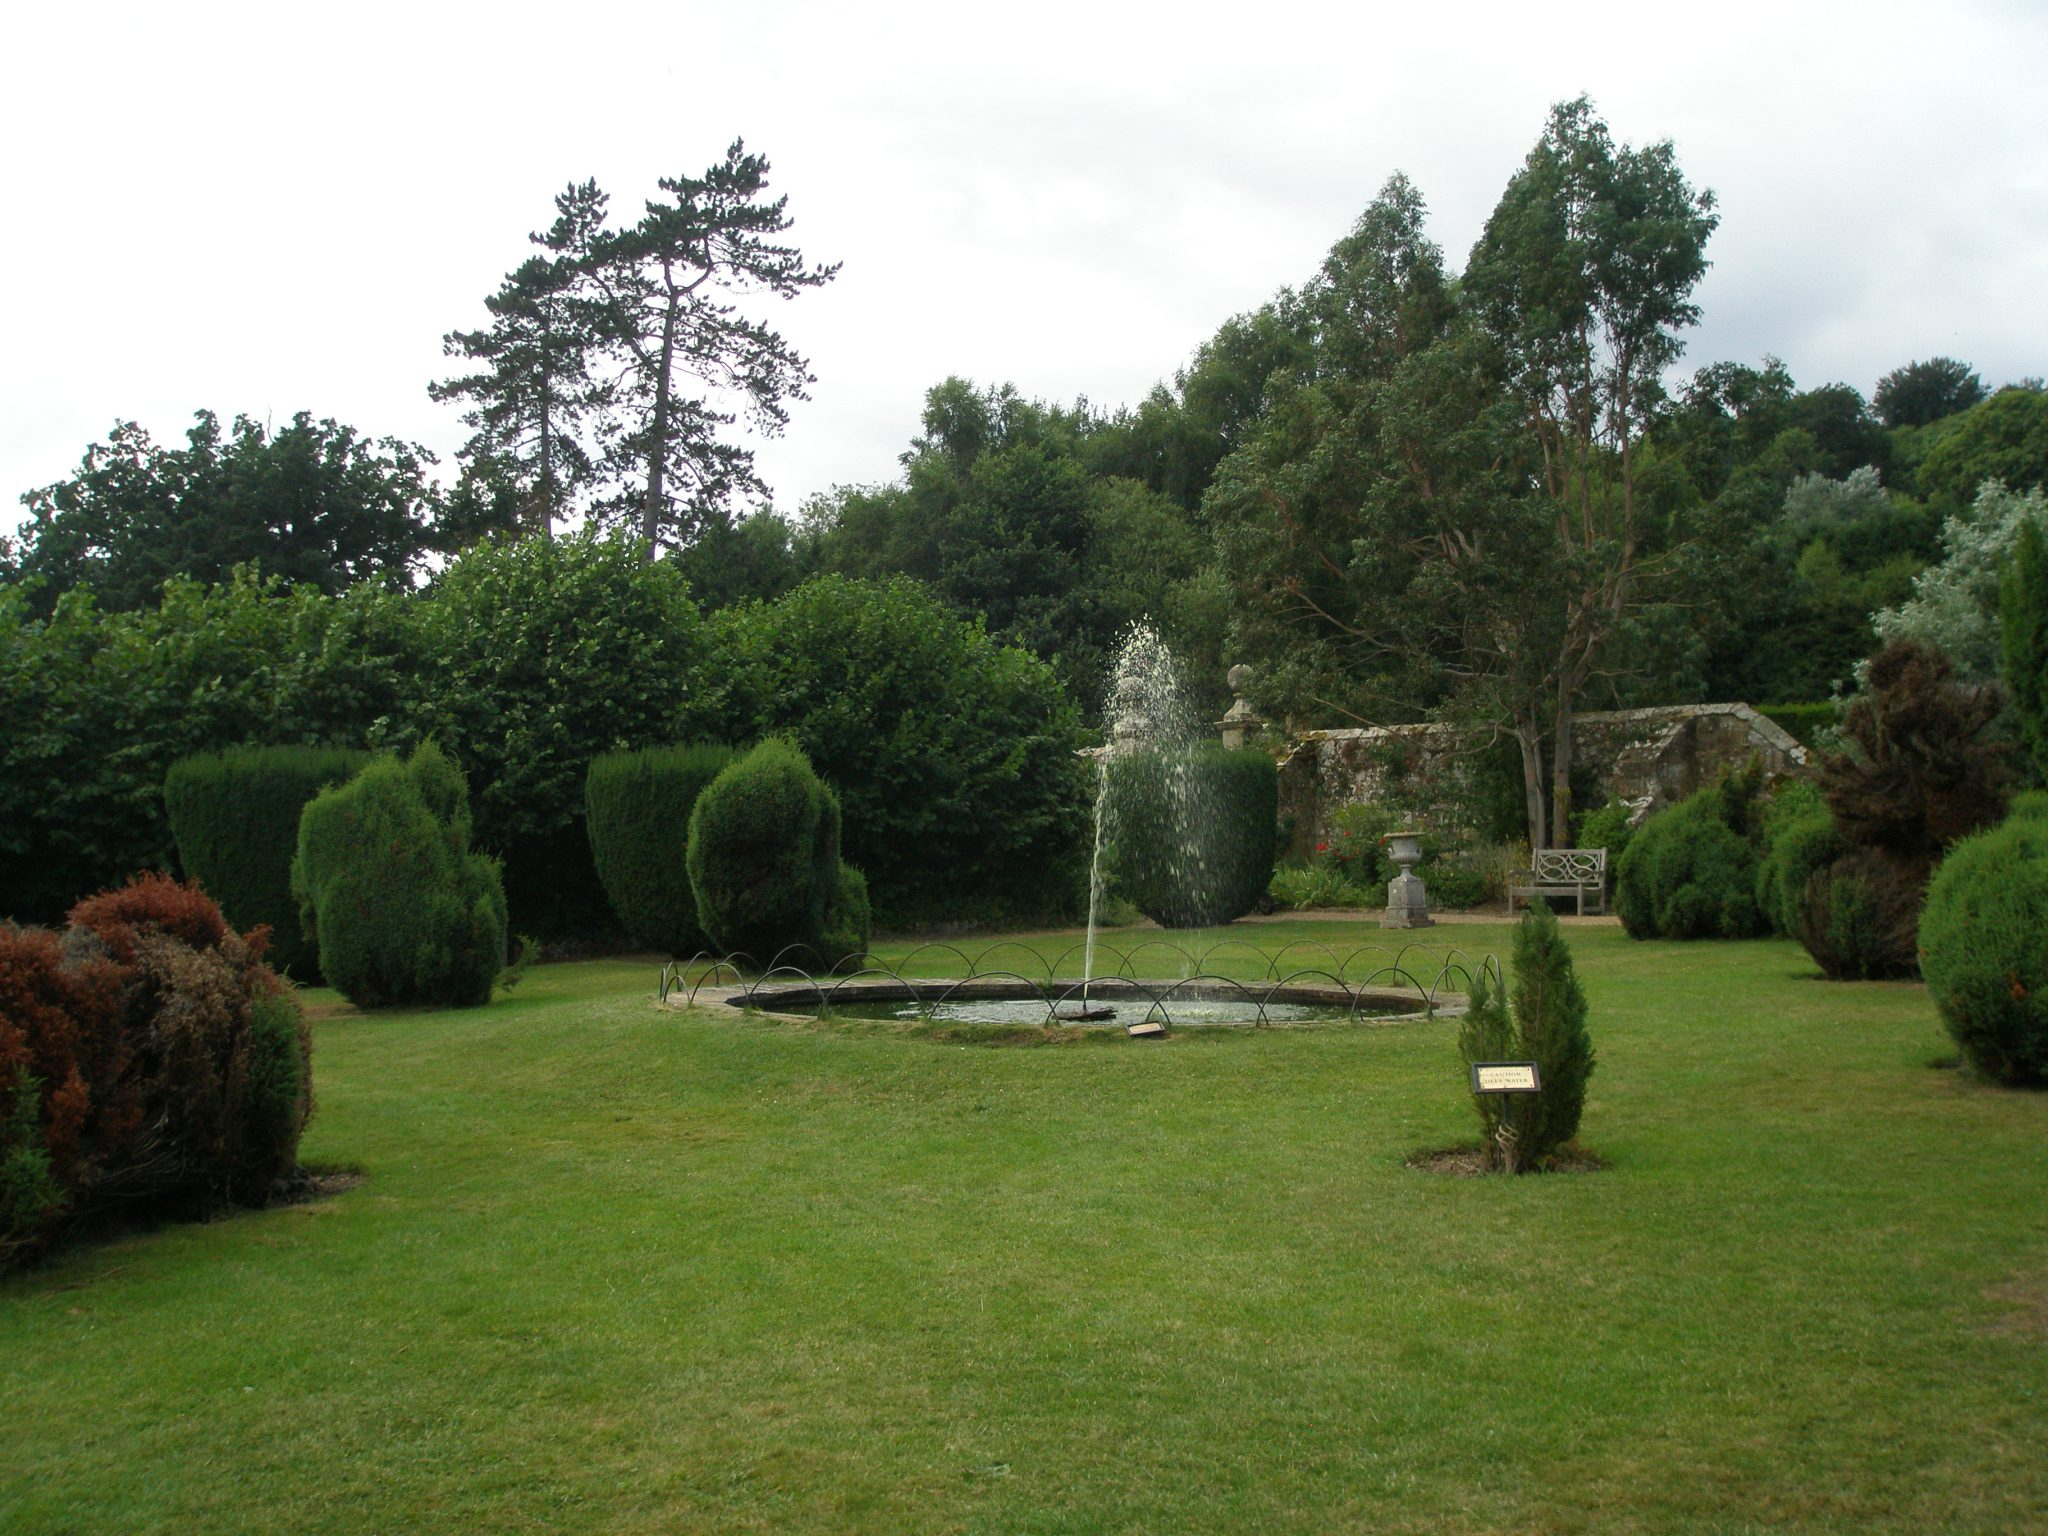 The Drunken Garden, at Groombridge Place